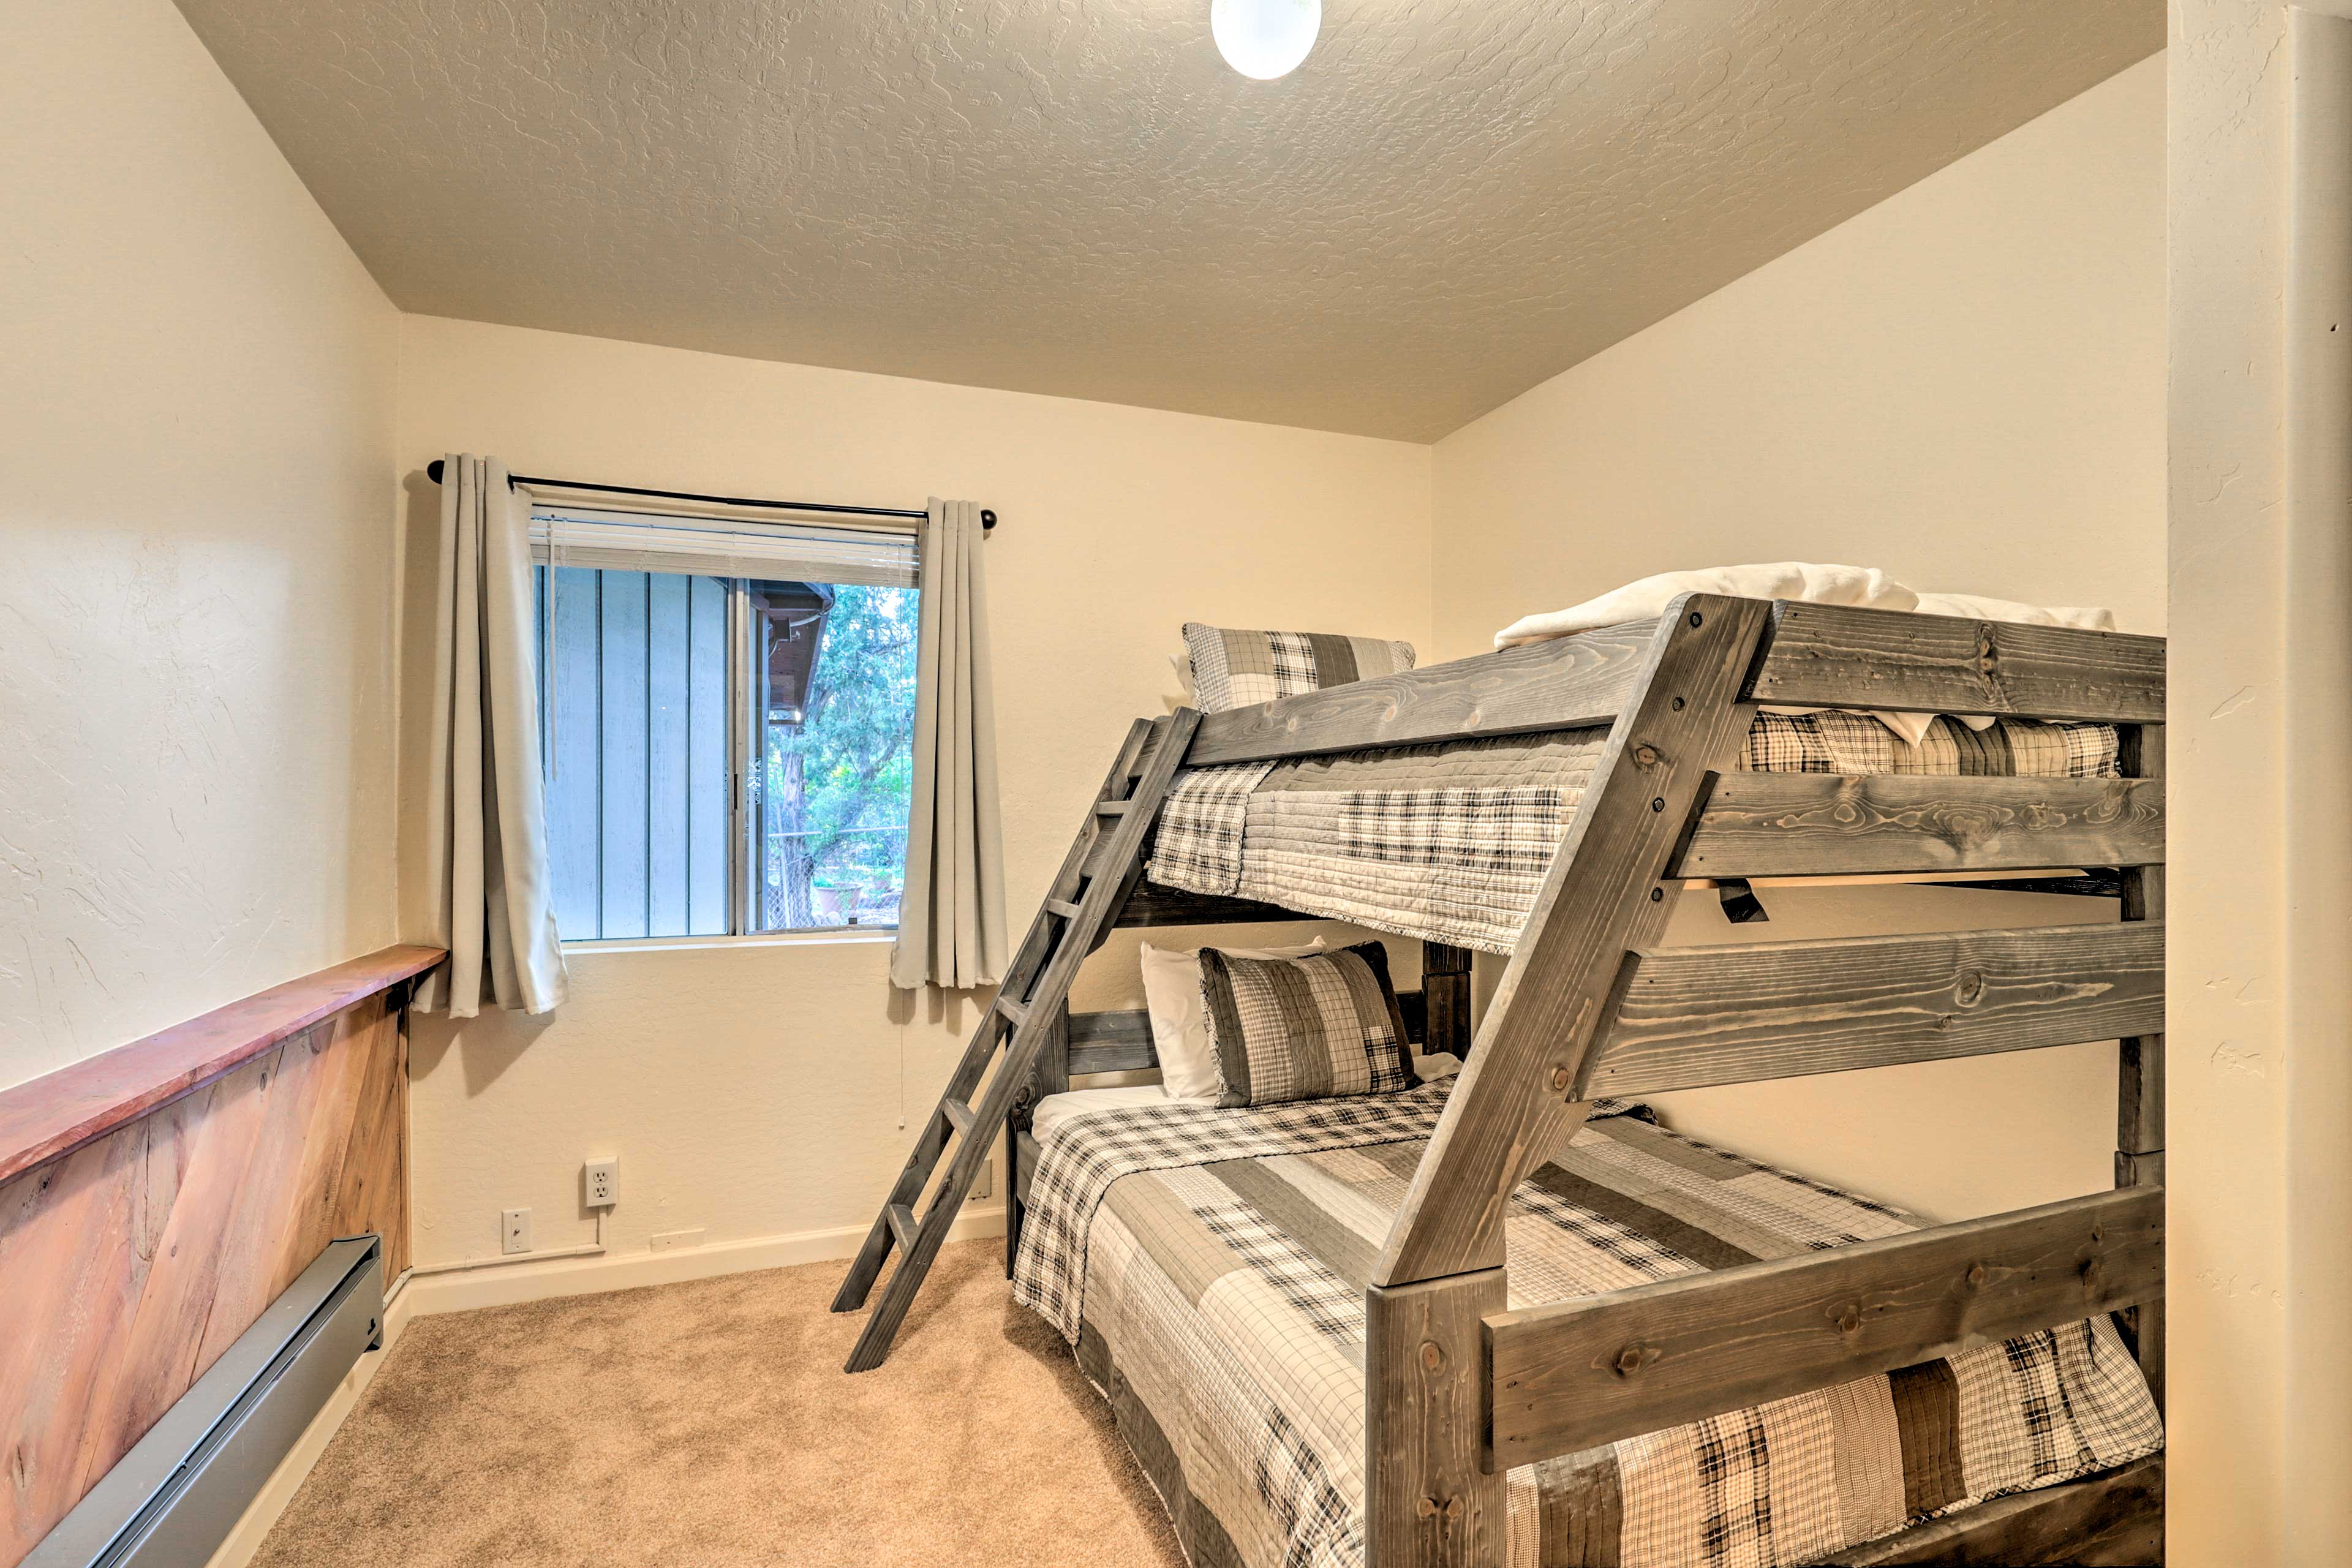 The third bedroom features a twin/full bunk bed with memory foam mattresses.